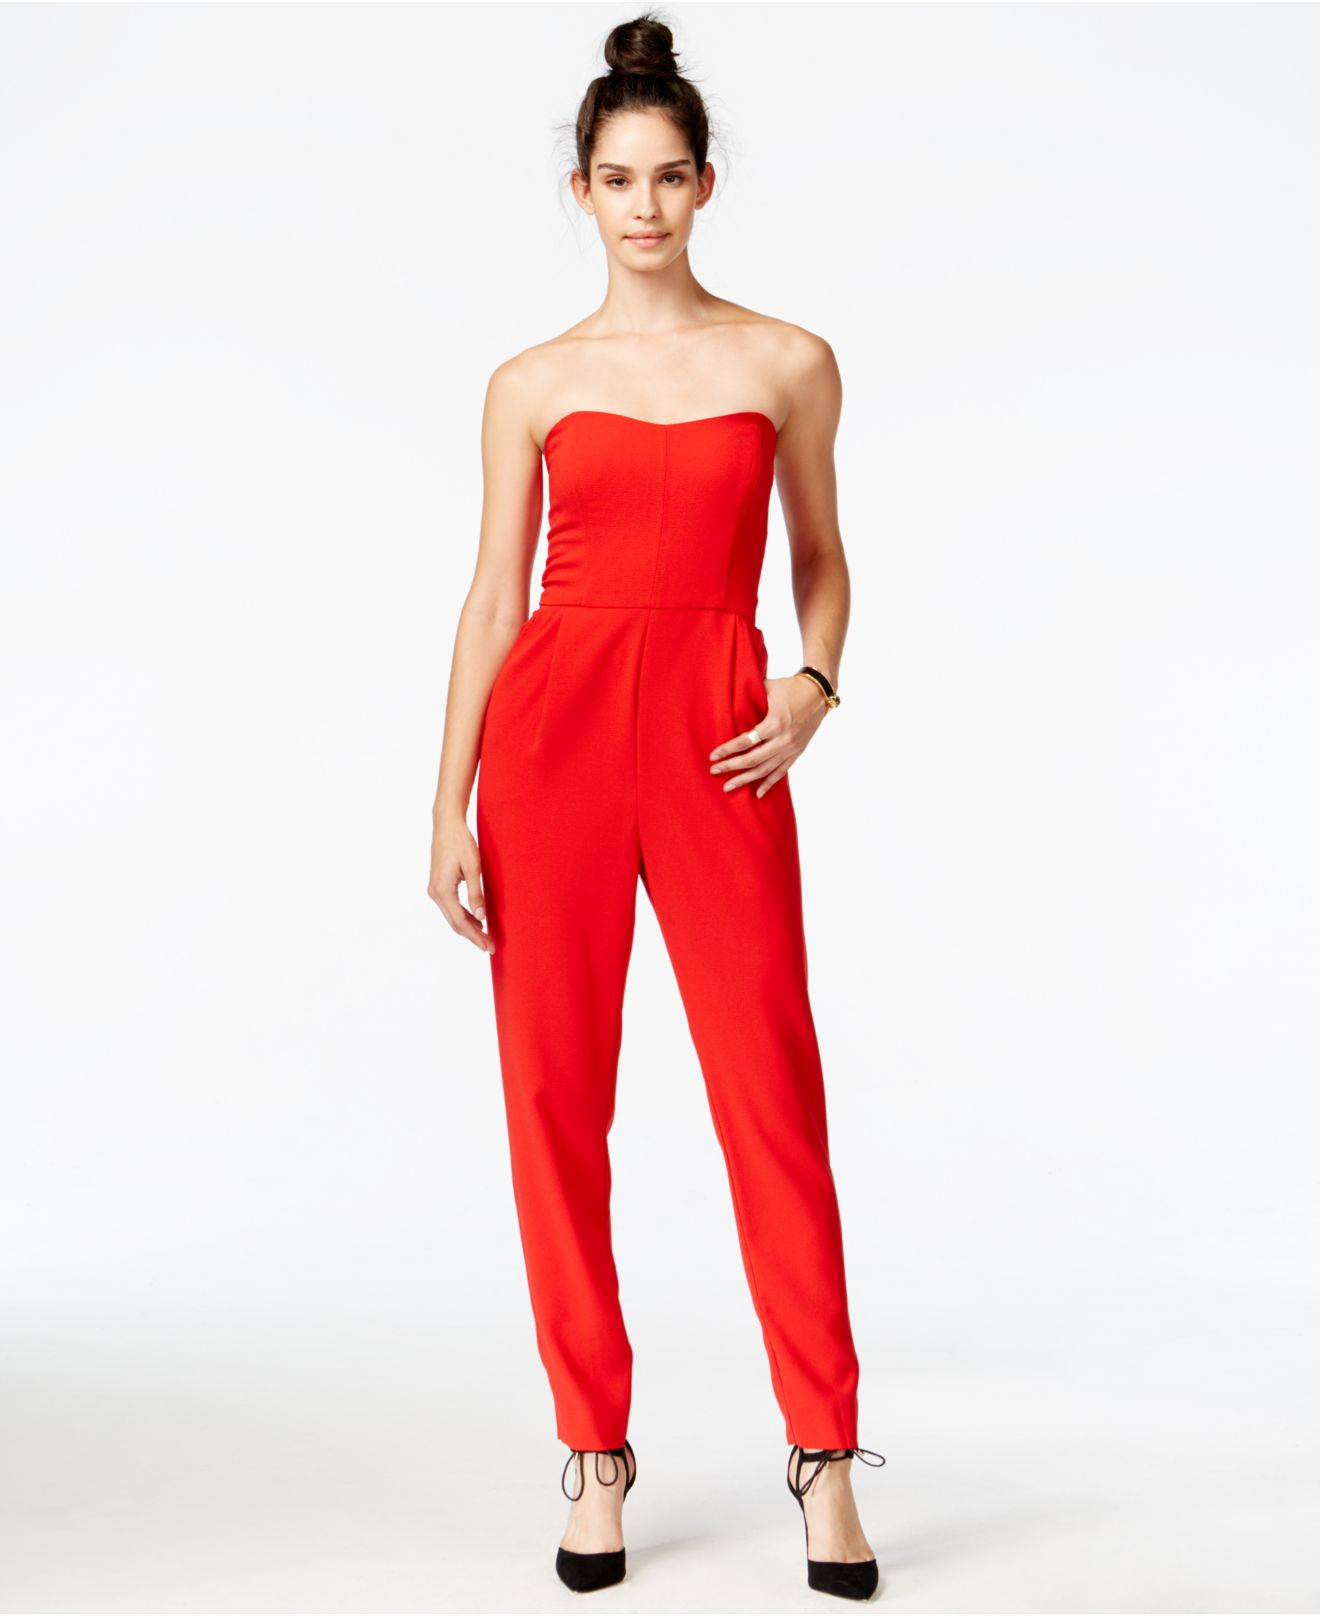 6fc8e929ba8e Lyst - RACHEL Rachel Roy Strapless Jumpsuit in Red